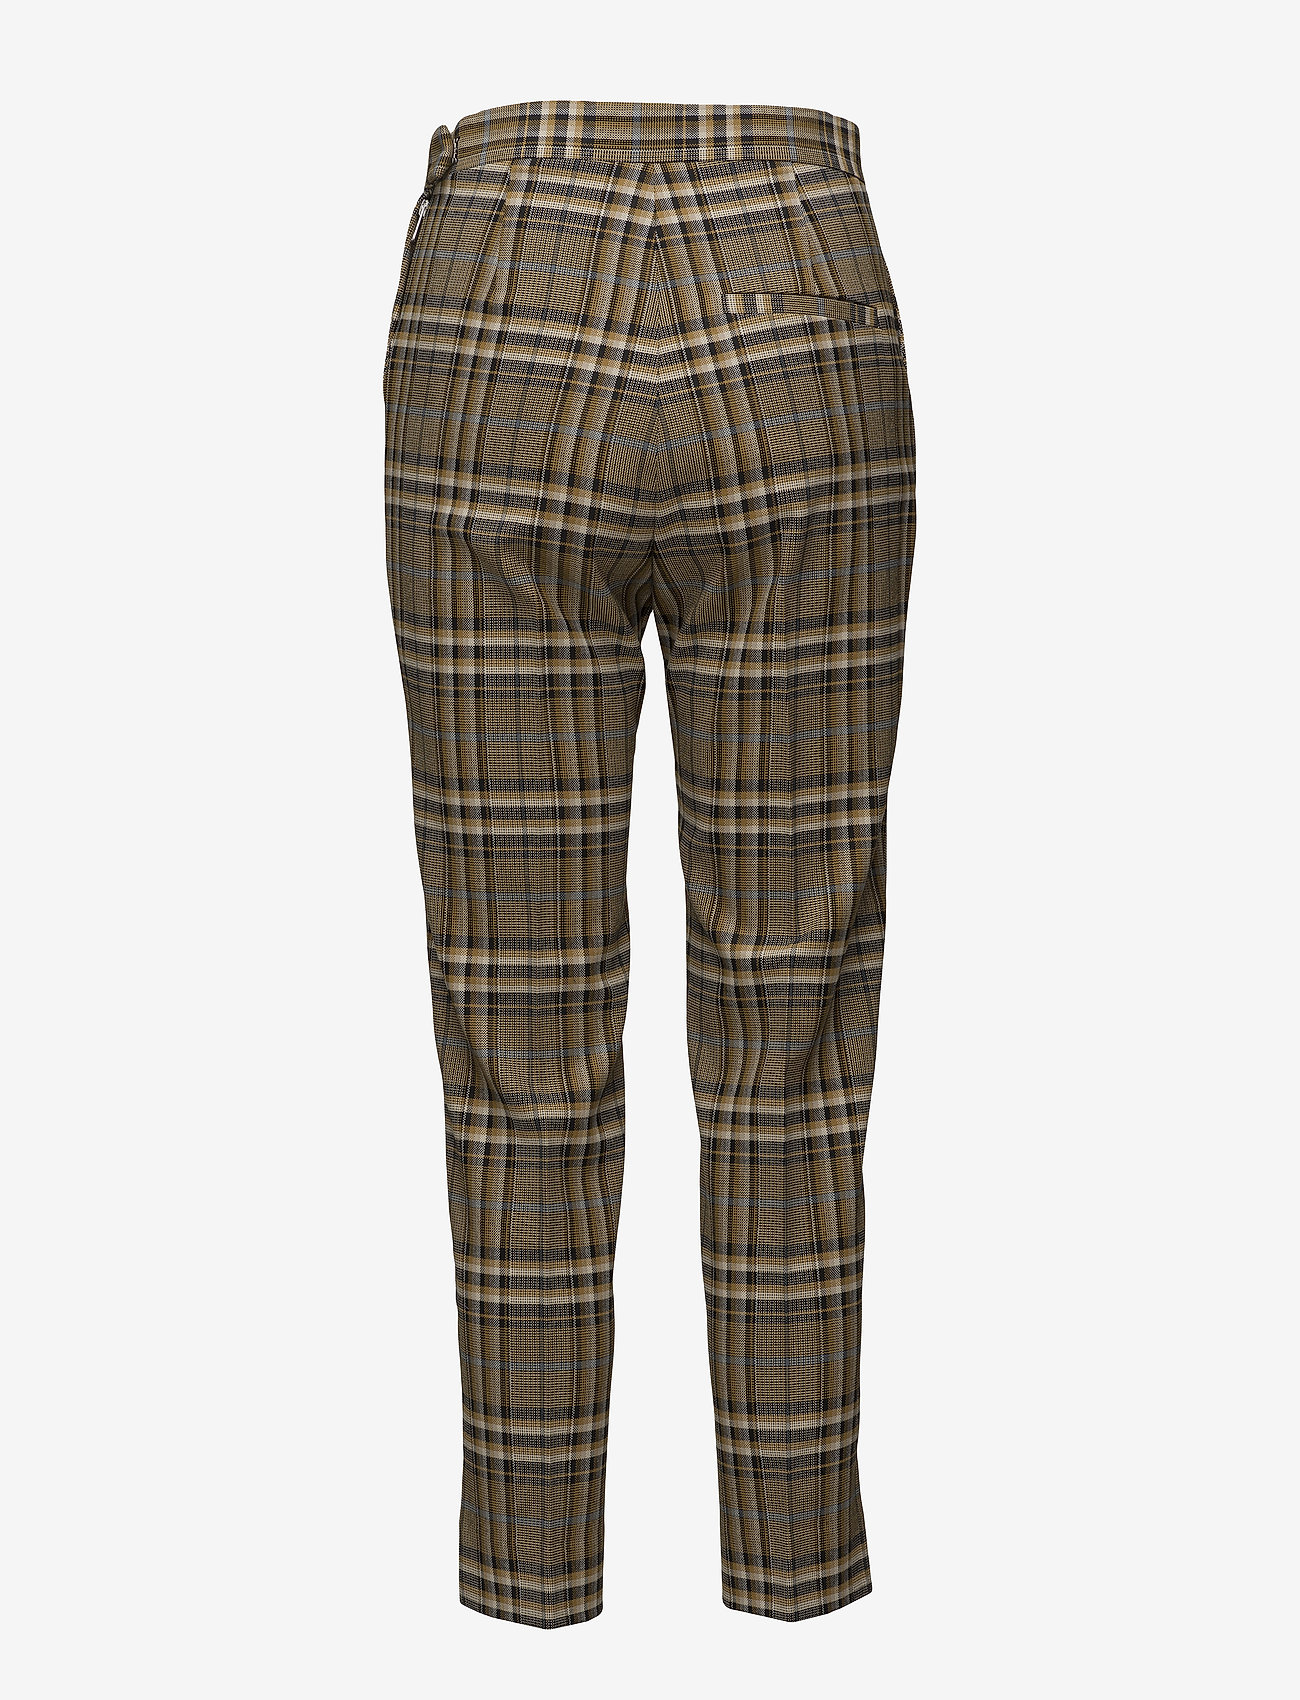 J. Lindeberg Mandalay Soft Check - Trousers BURRO